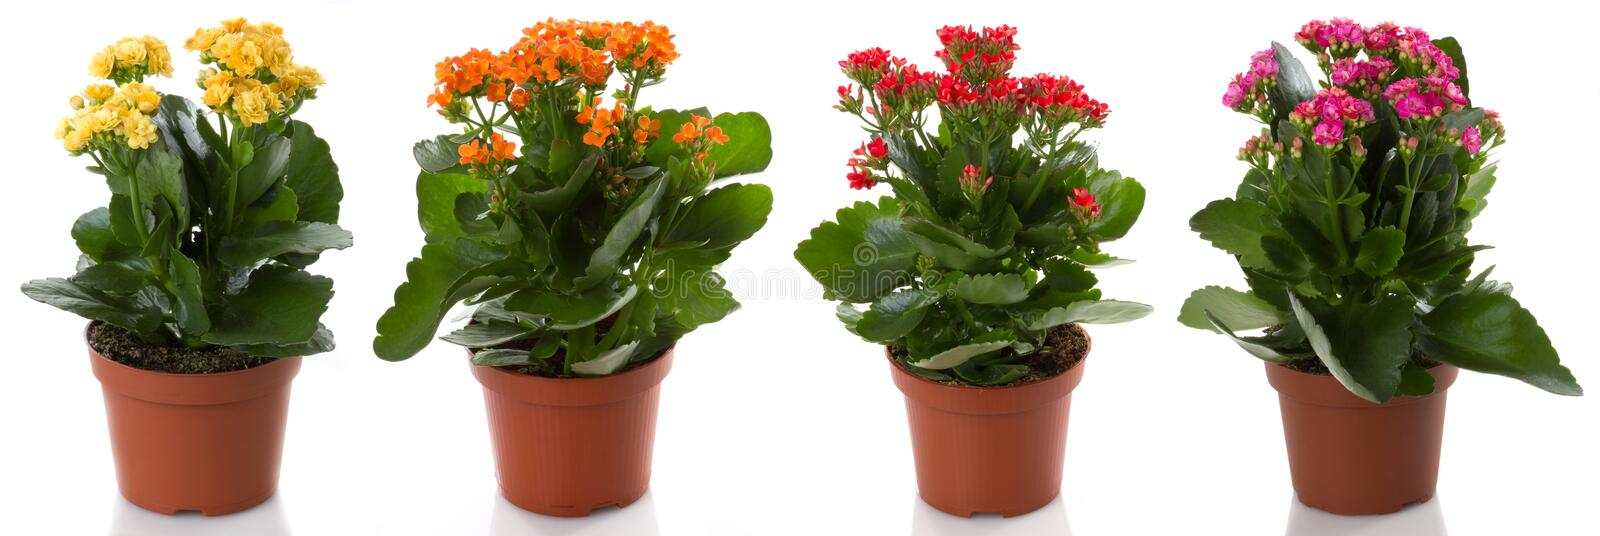 Download Potted flowers stock photo. Image of colors, colorful - 16899038